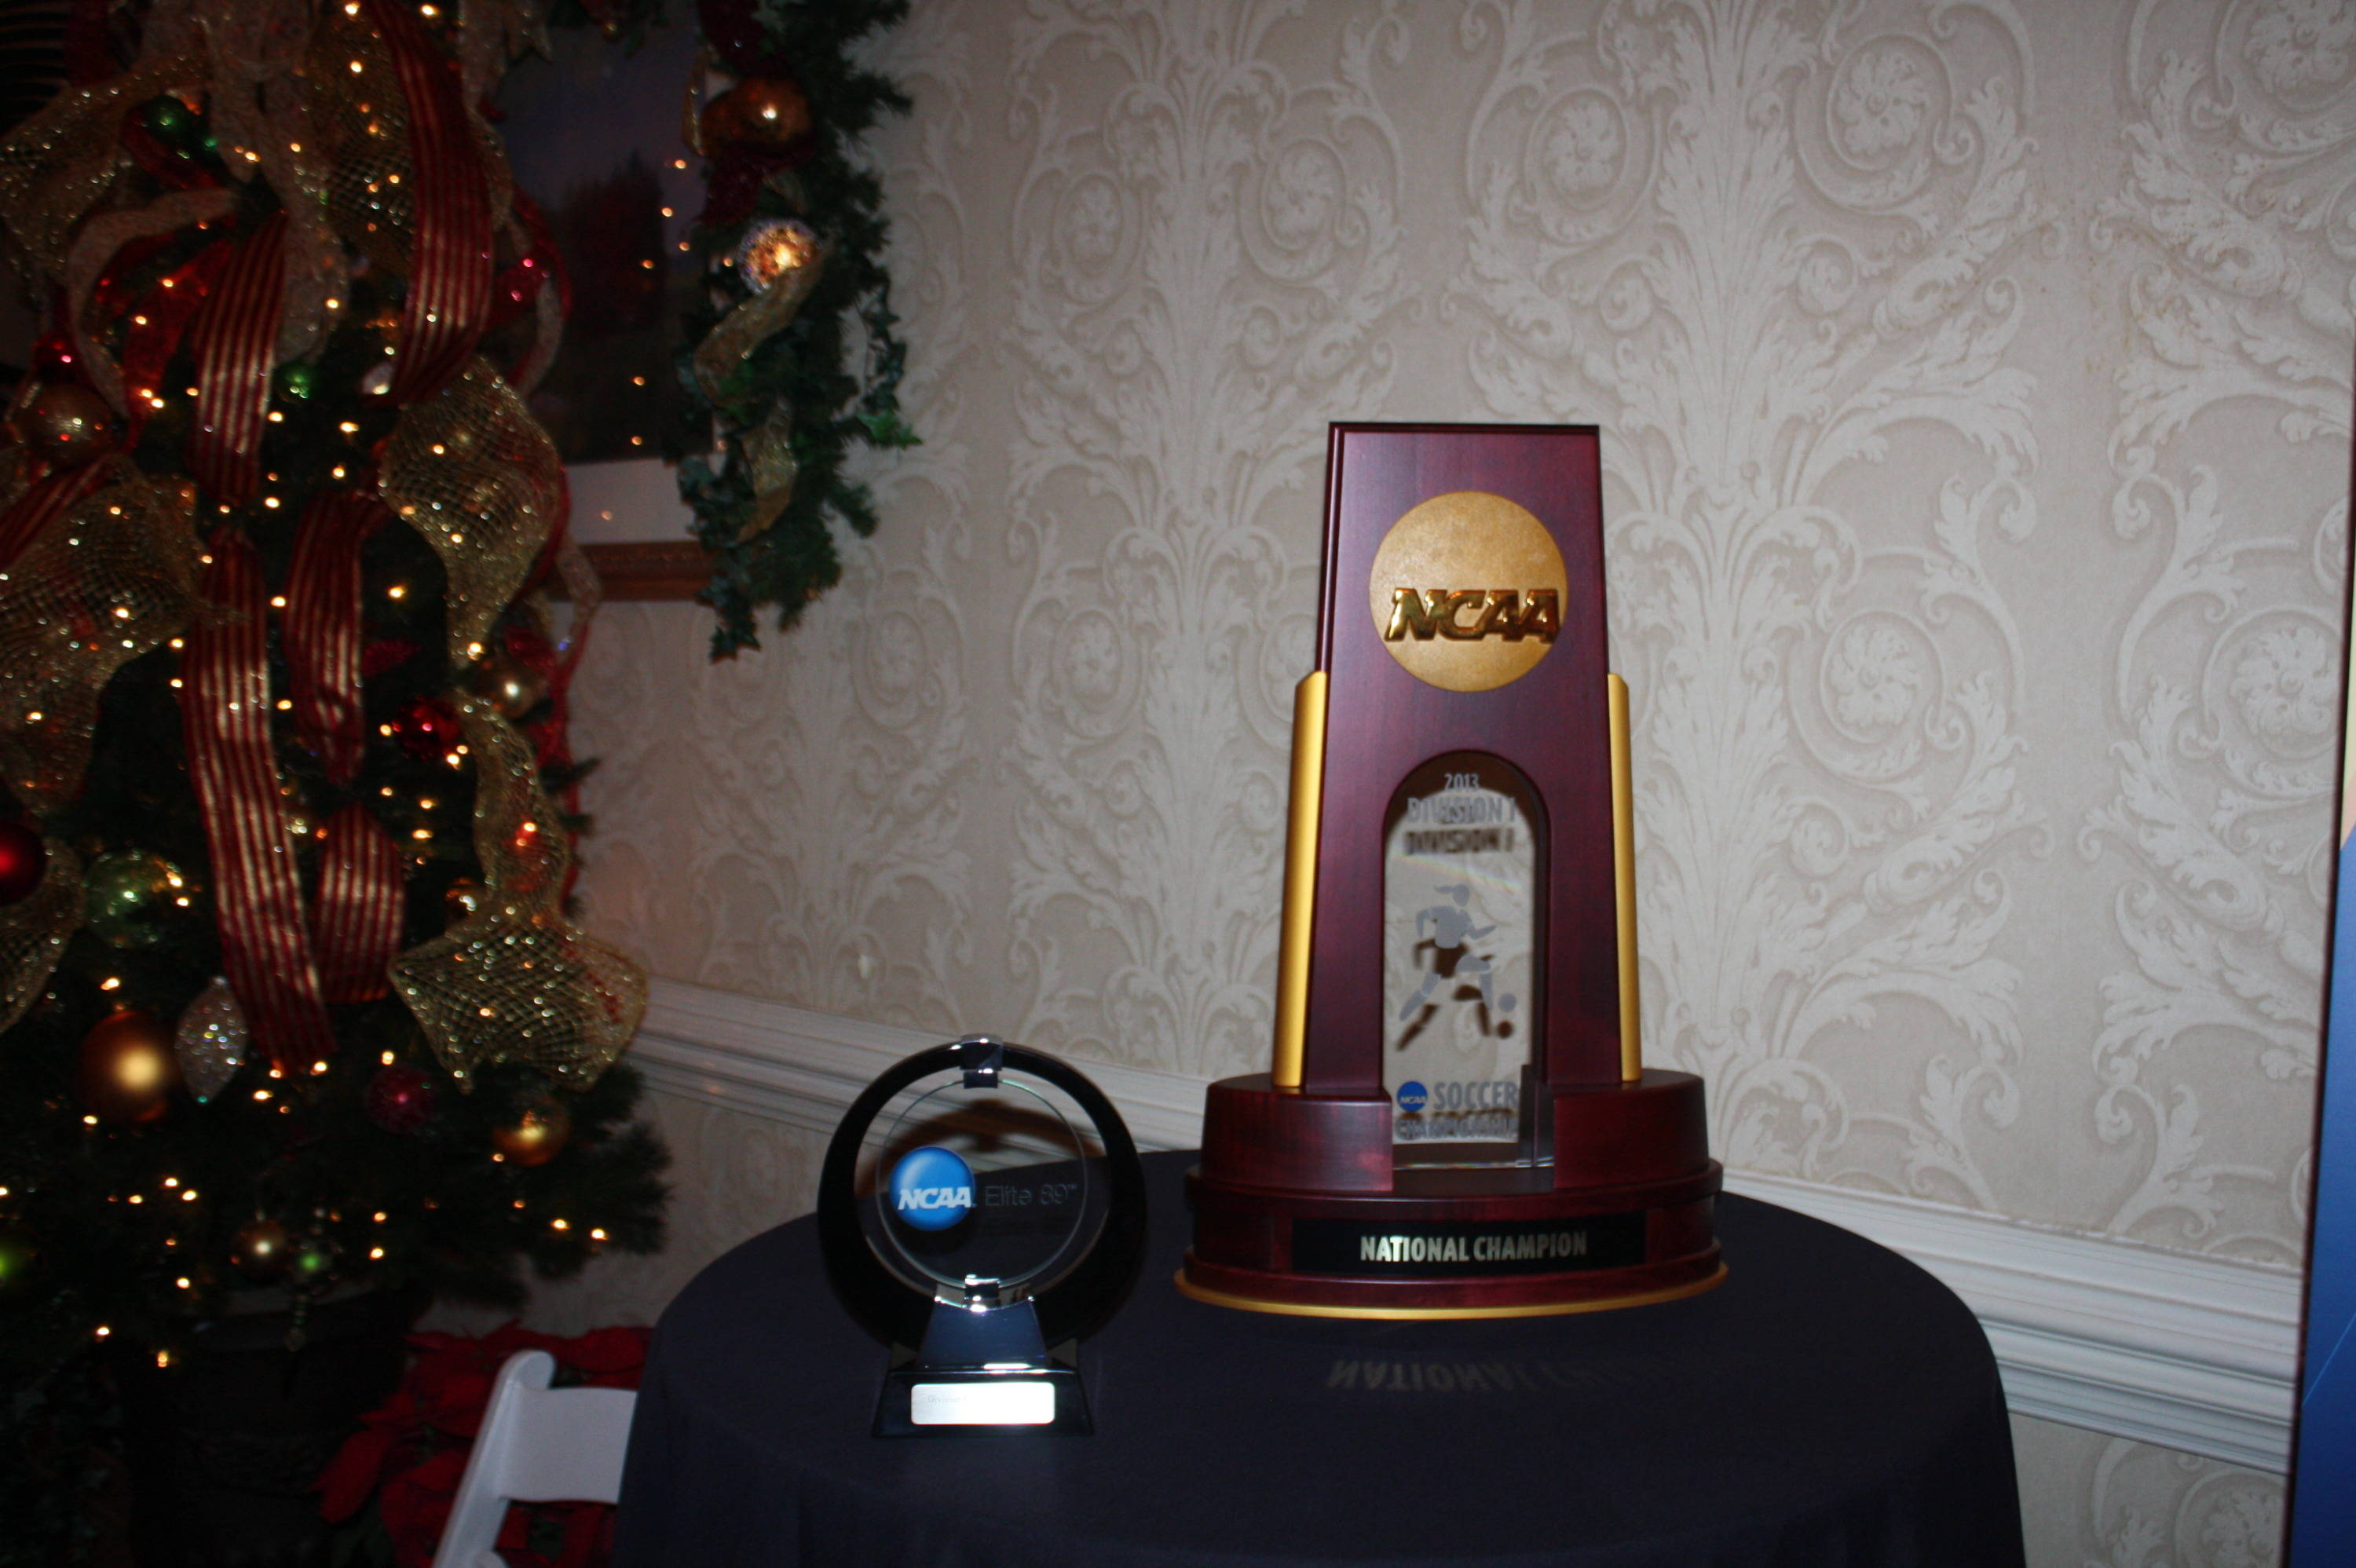 The national championship trophy and the Elite 89 Award.